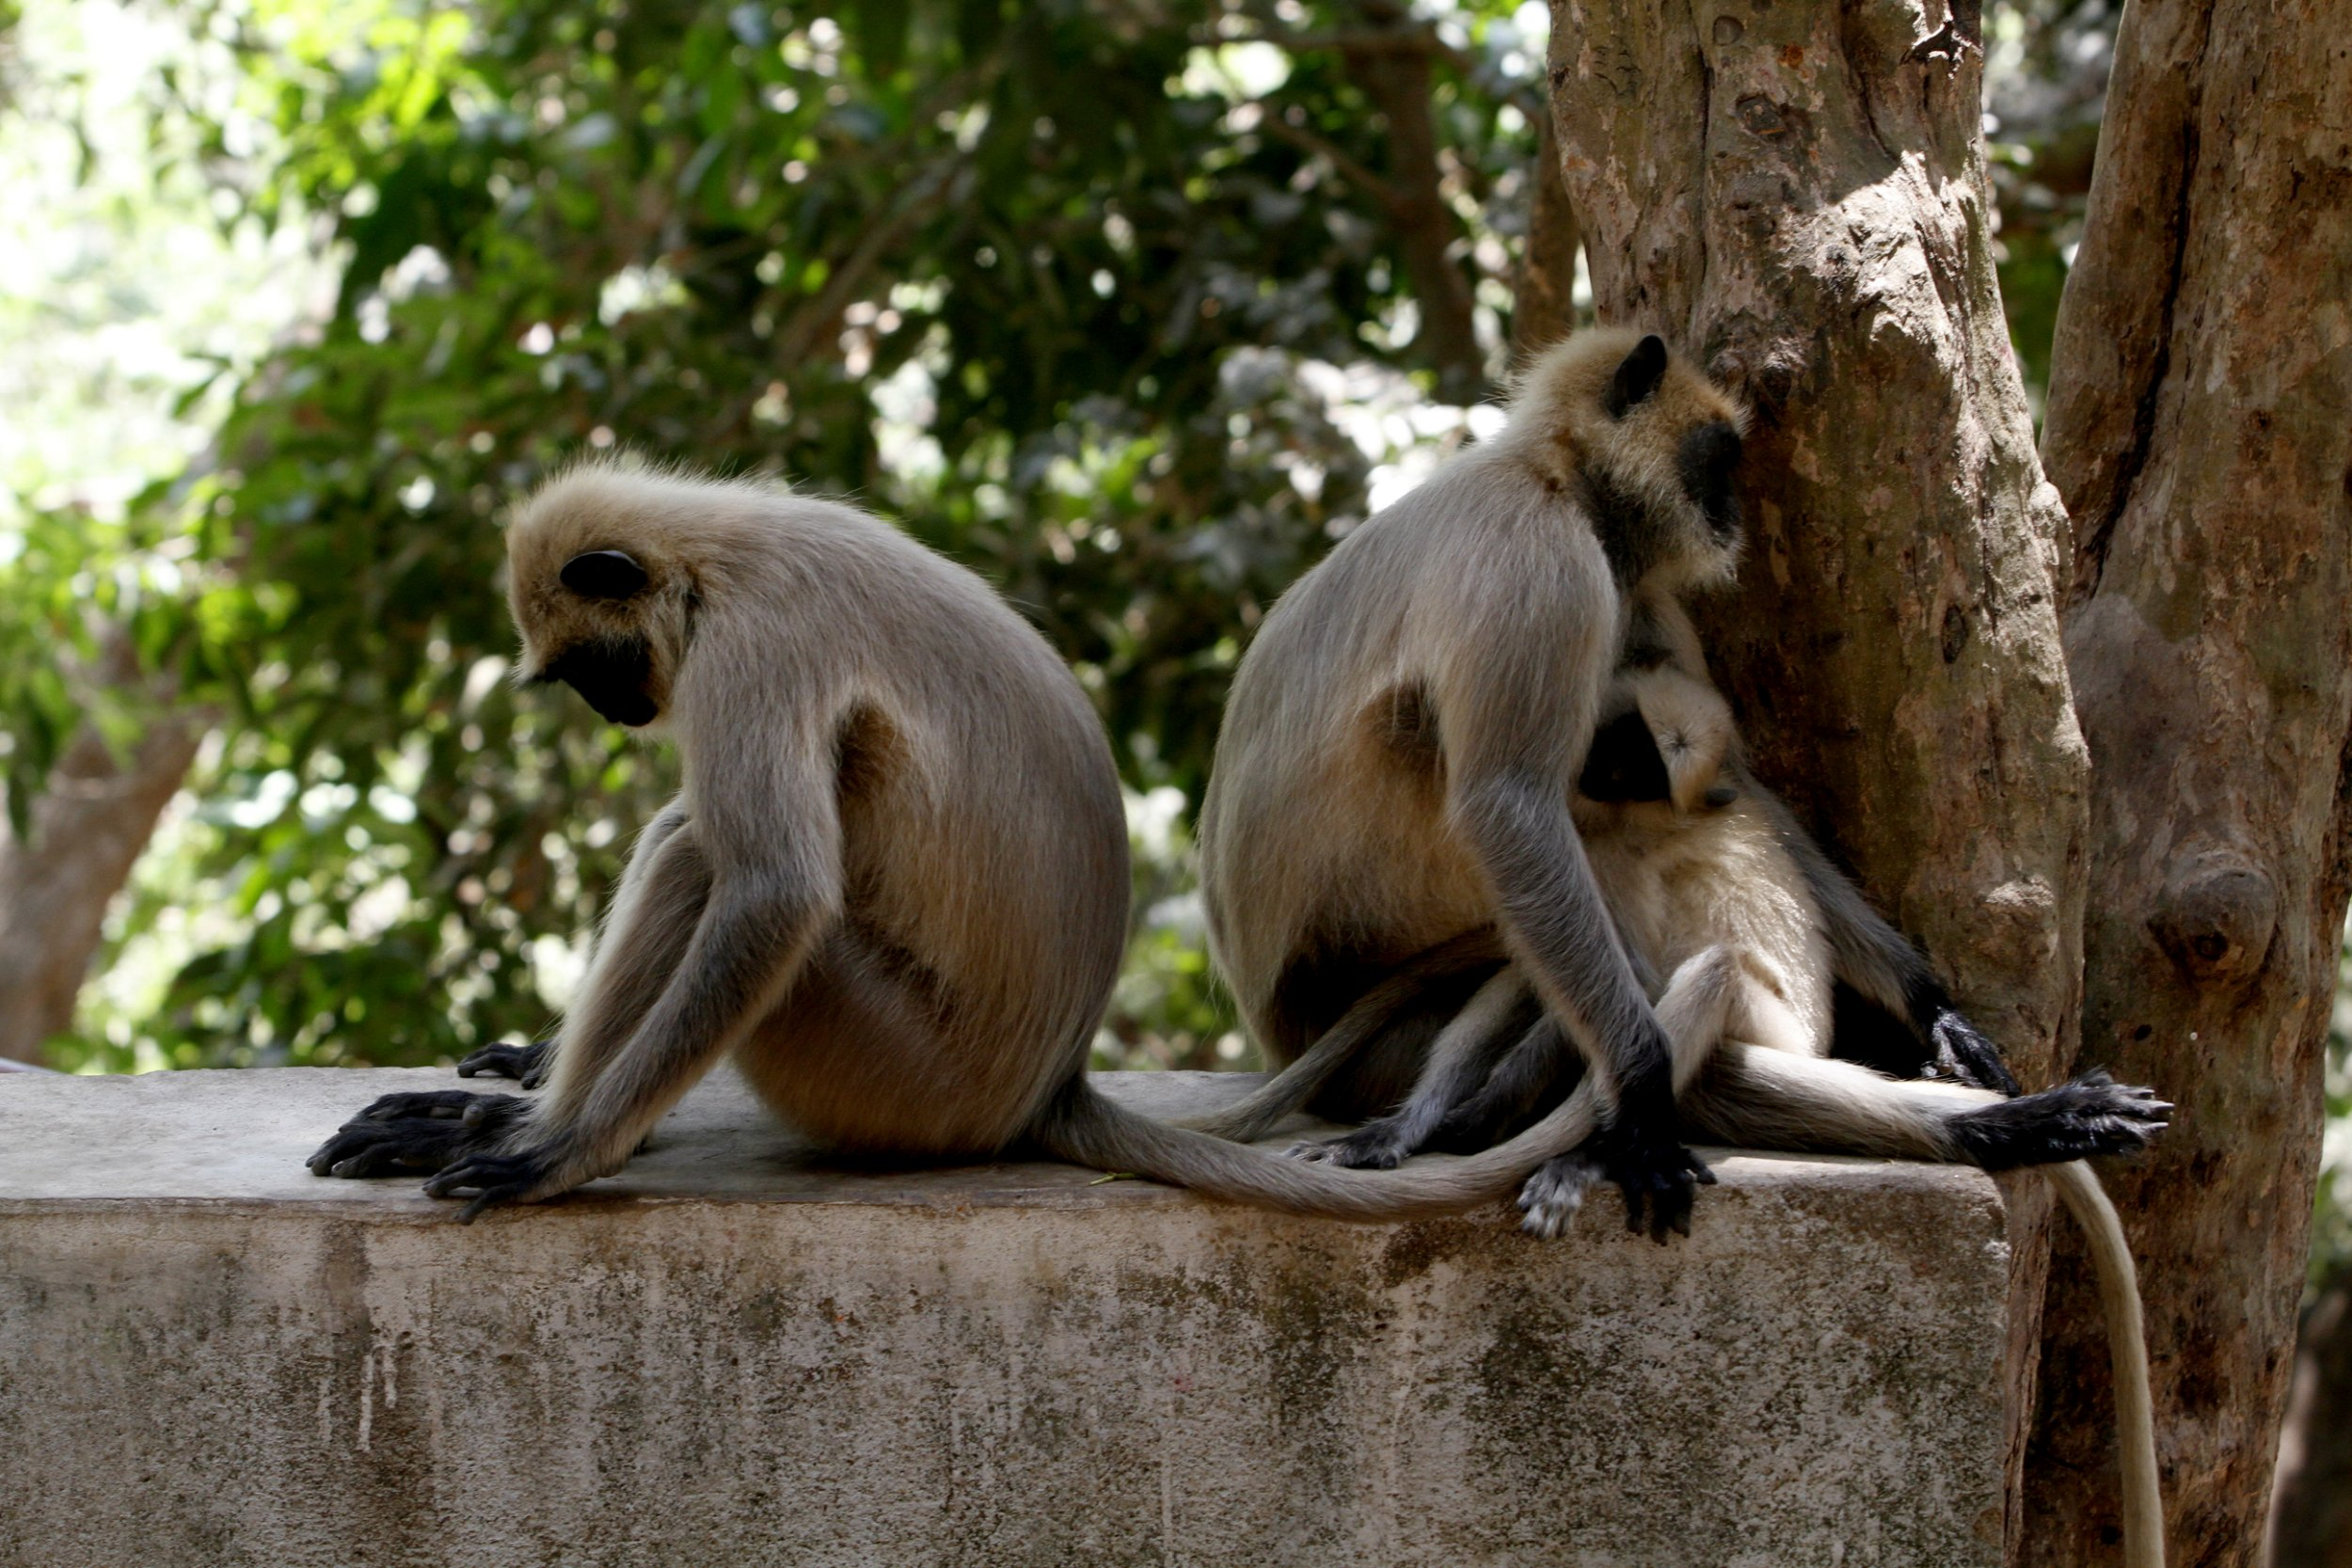 Wild monkeys naps in the branch of a tree and the shadow of trees to beat the heat at the Khandagiri cave hills in todays hot afternoon in the eastern Indian city Bhubaneswar, India, Monday, 25 April 2016.n (Photo by Biswaranjan Rout/NurPhoto via Getty Images)